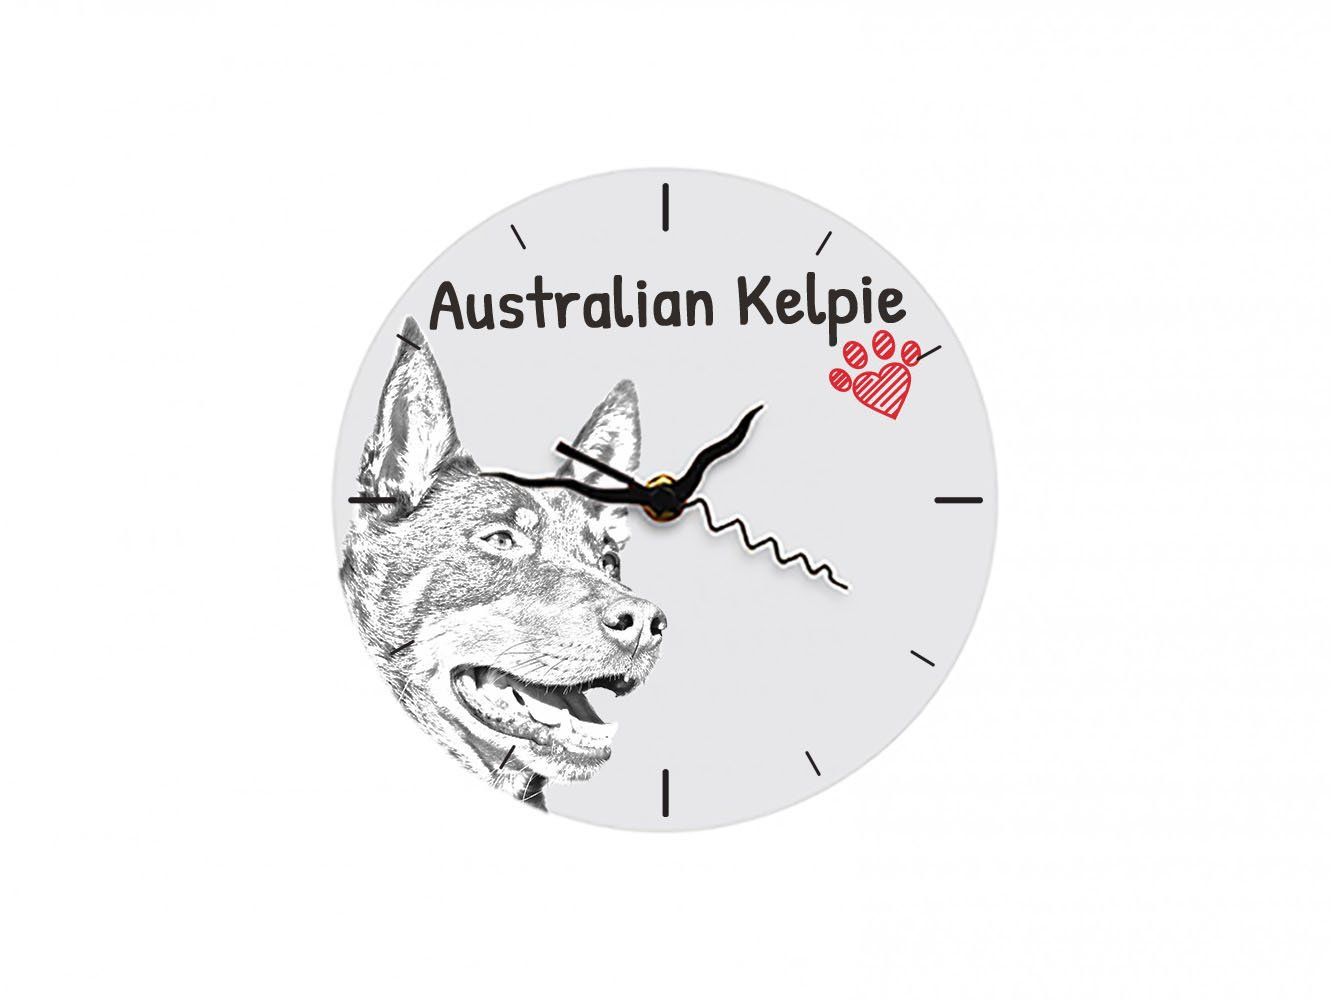 ArtDog Ltd. Australian Kelpie, freestanding MDF floor clock with an image of a dog